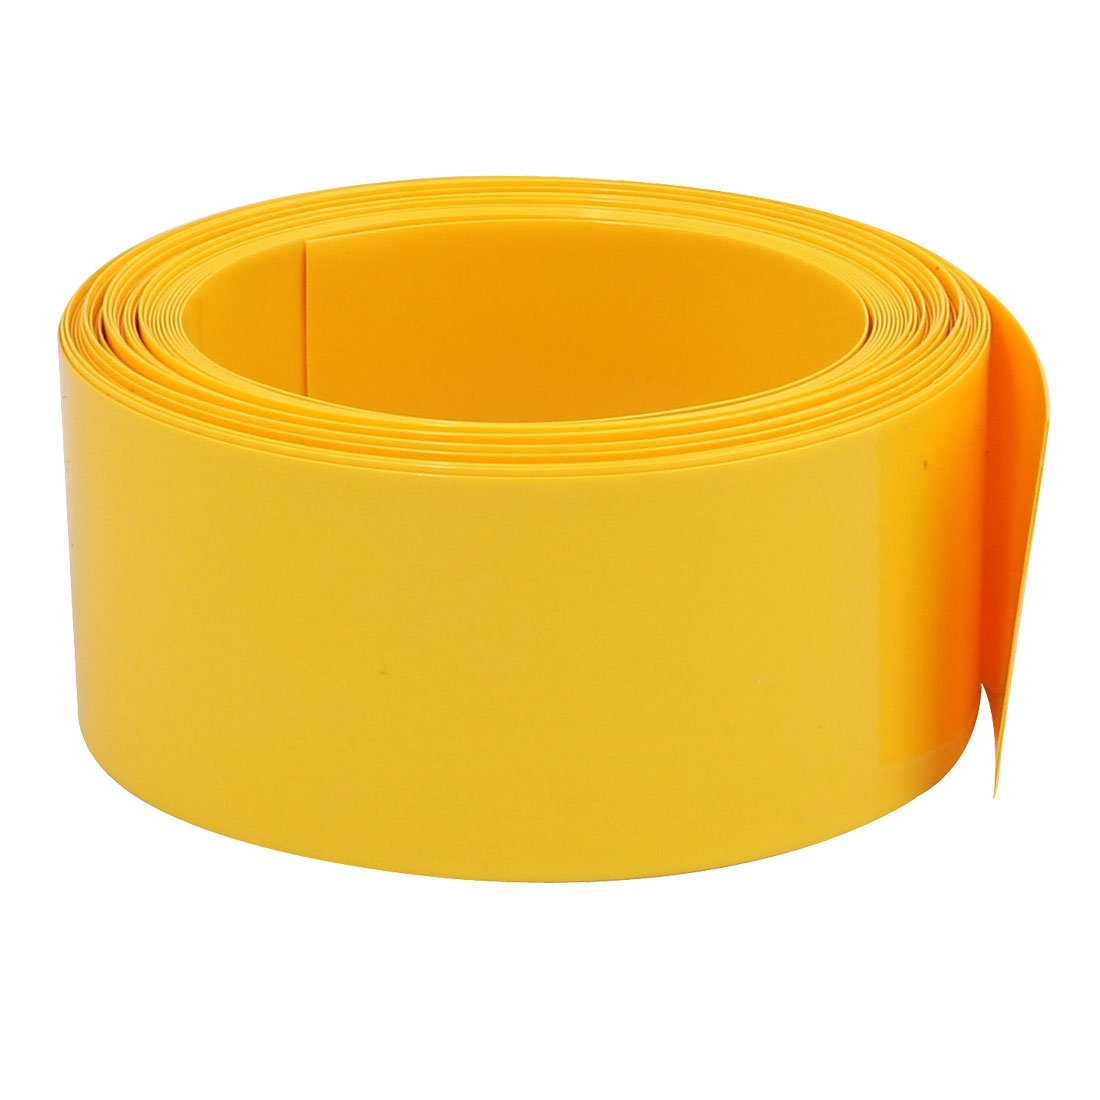 29.5mm Flat Width 6M Long PVC Heat Shrinkable Tube Yellow for 18650 Battery Pack